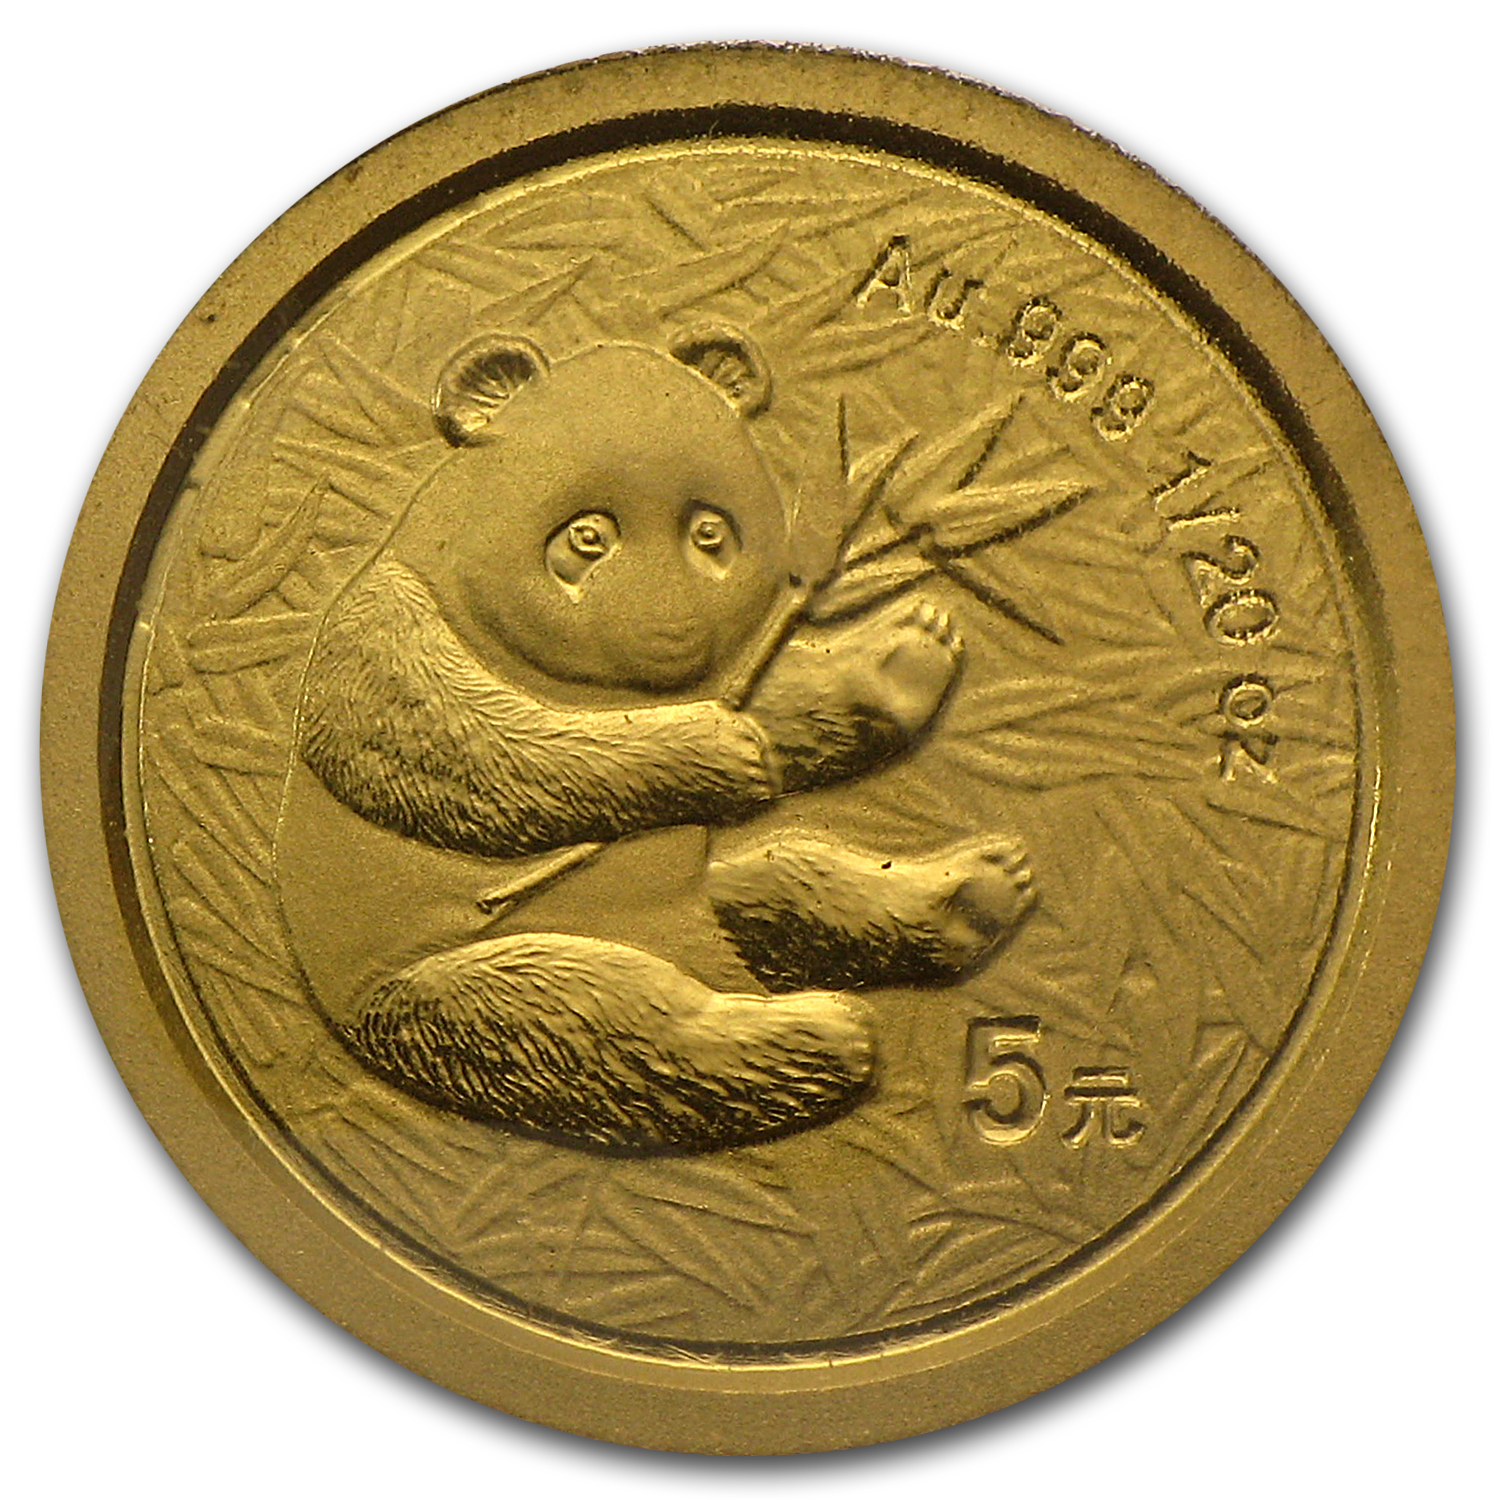 2000 1/20 oz Gold Chinese Panda Frosted BU (Sealed)